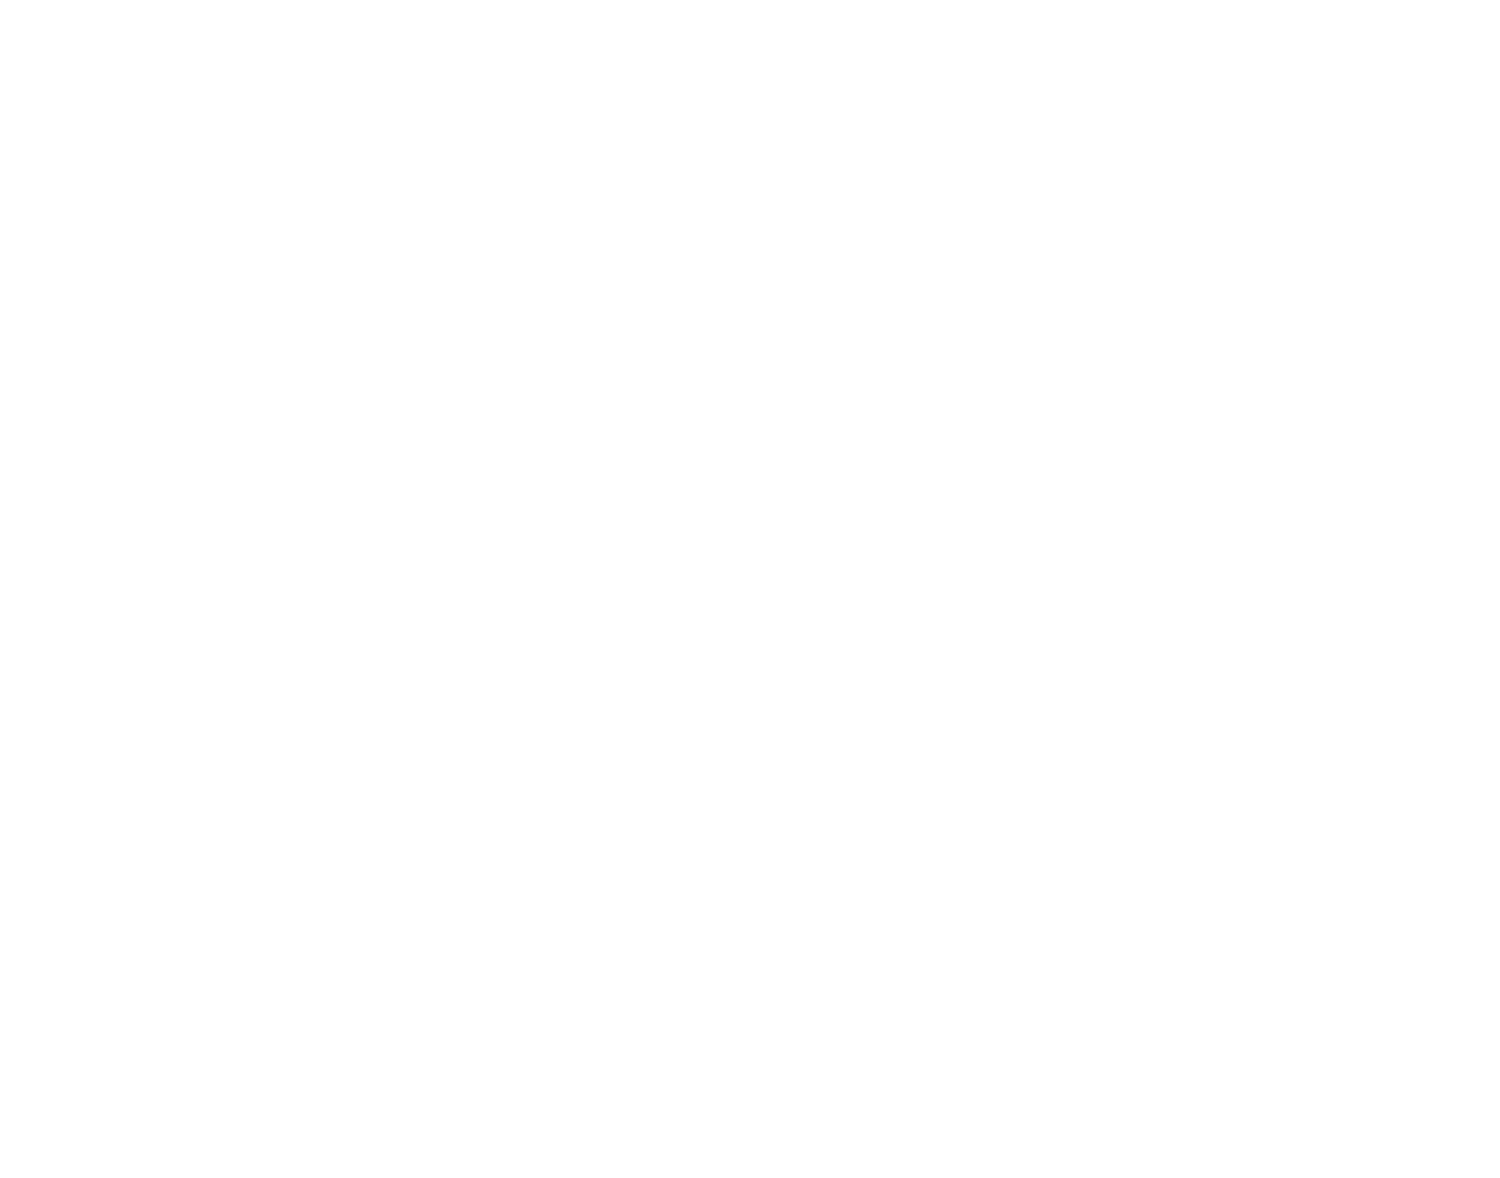 Innovative Transit Solutions logo white